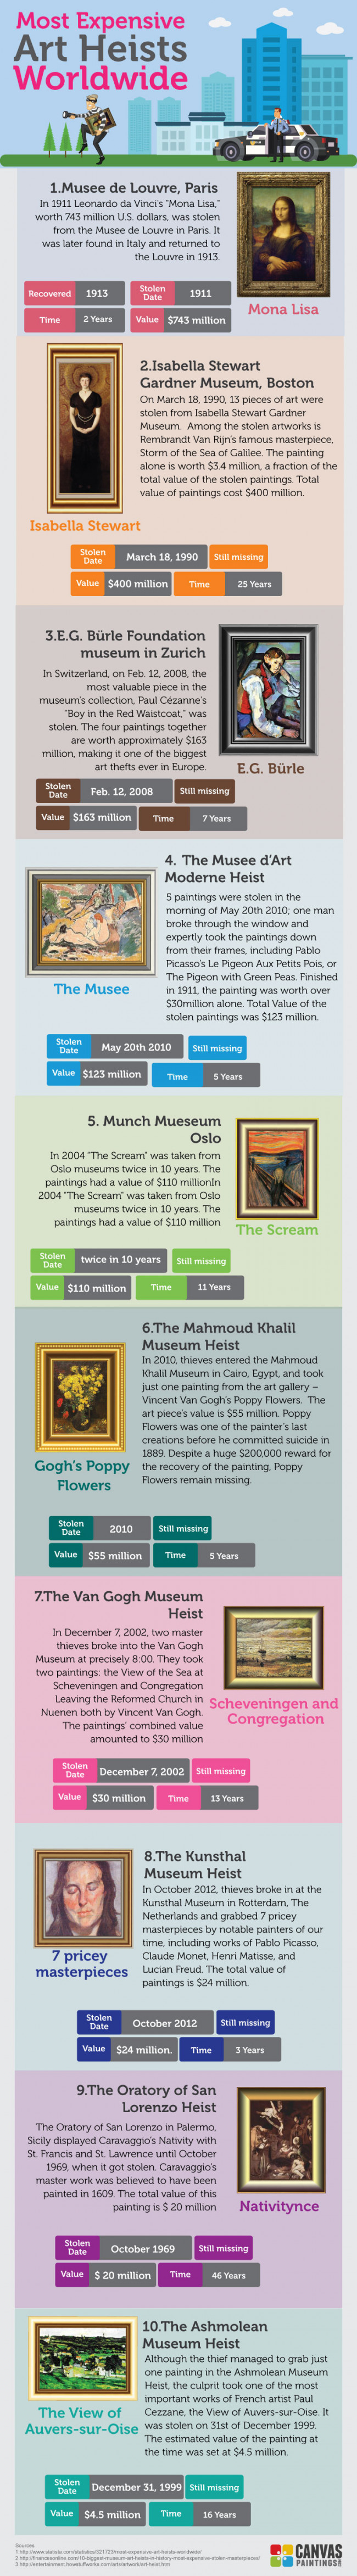 Most Expensive Paintings Heists